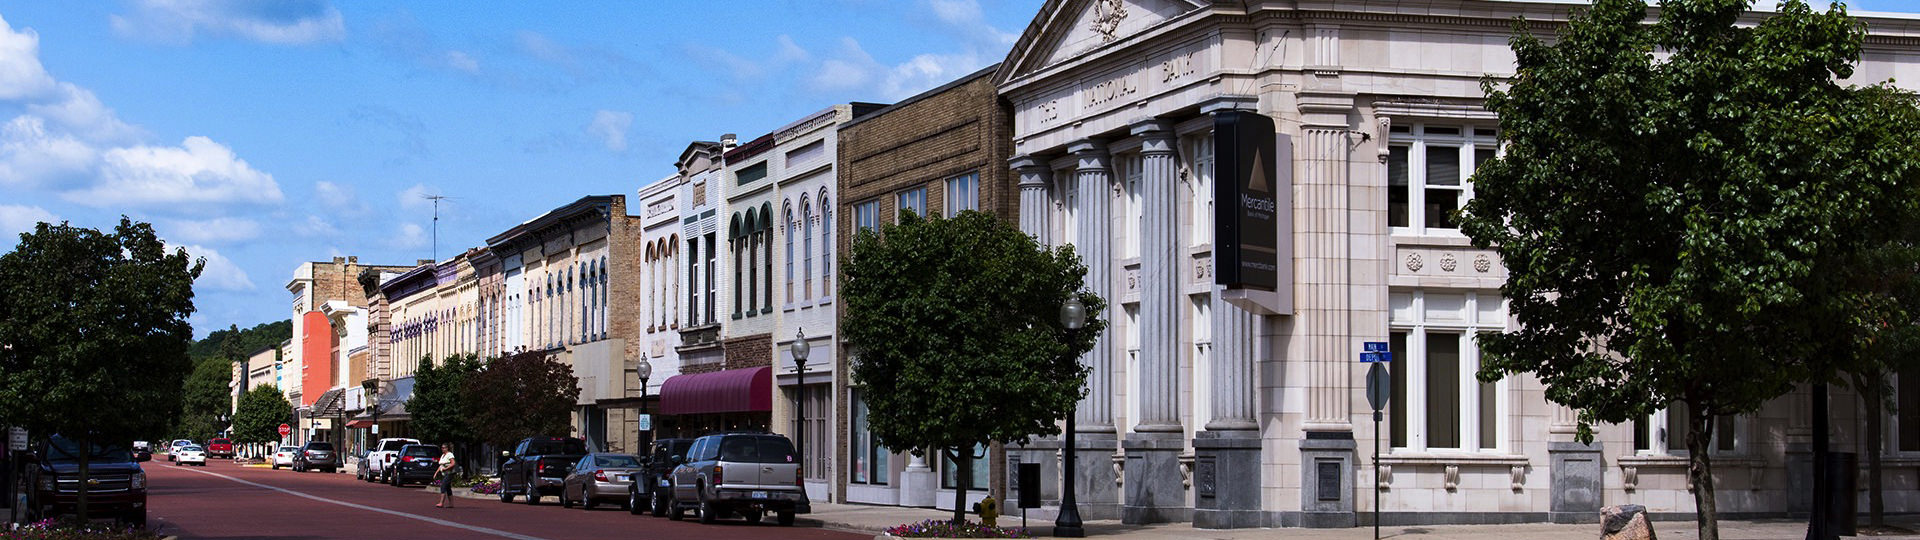 City of Ionia - Planning and Zoning